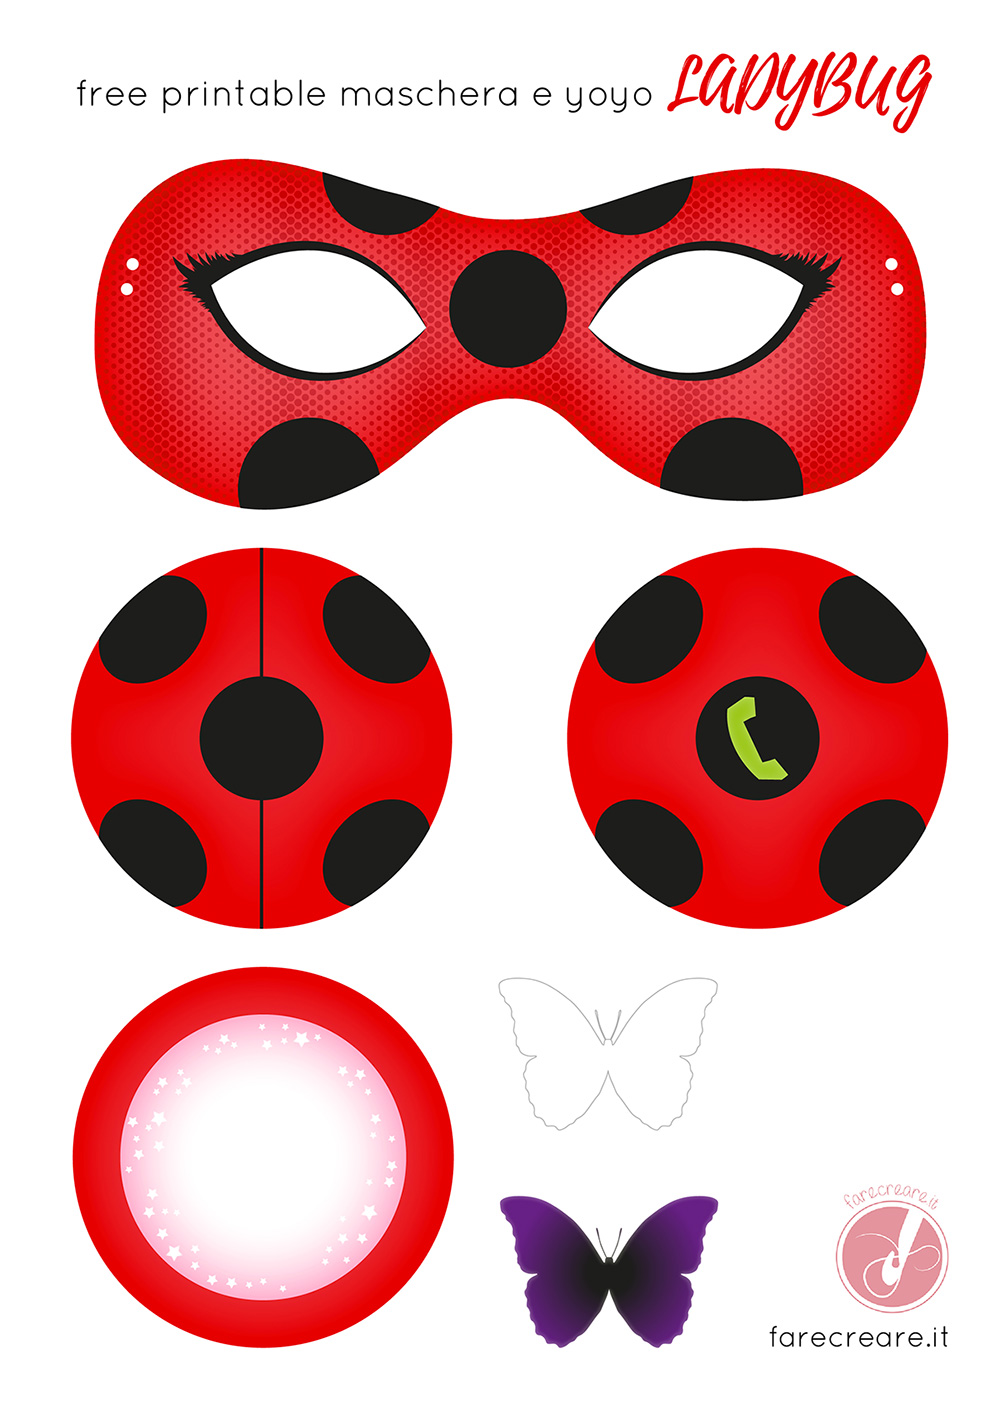 Come fare lo yoyo e la maschera di Lady bug in carta- Free template da stampare.